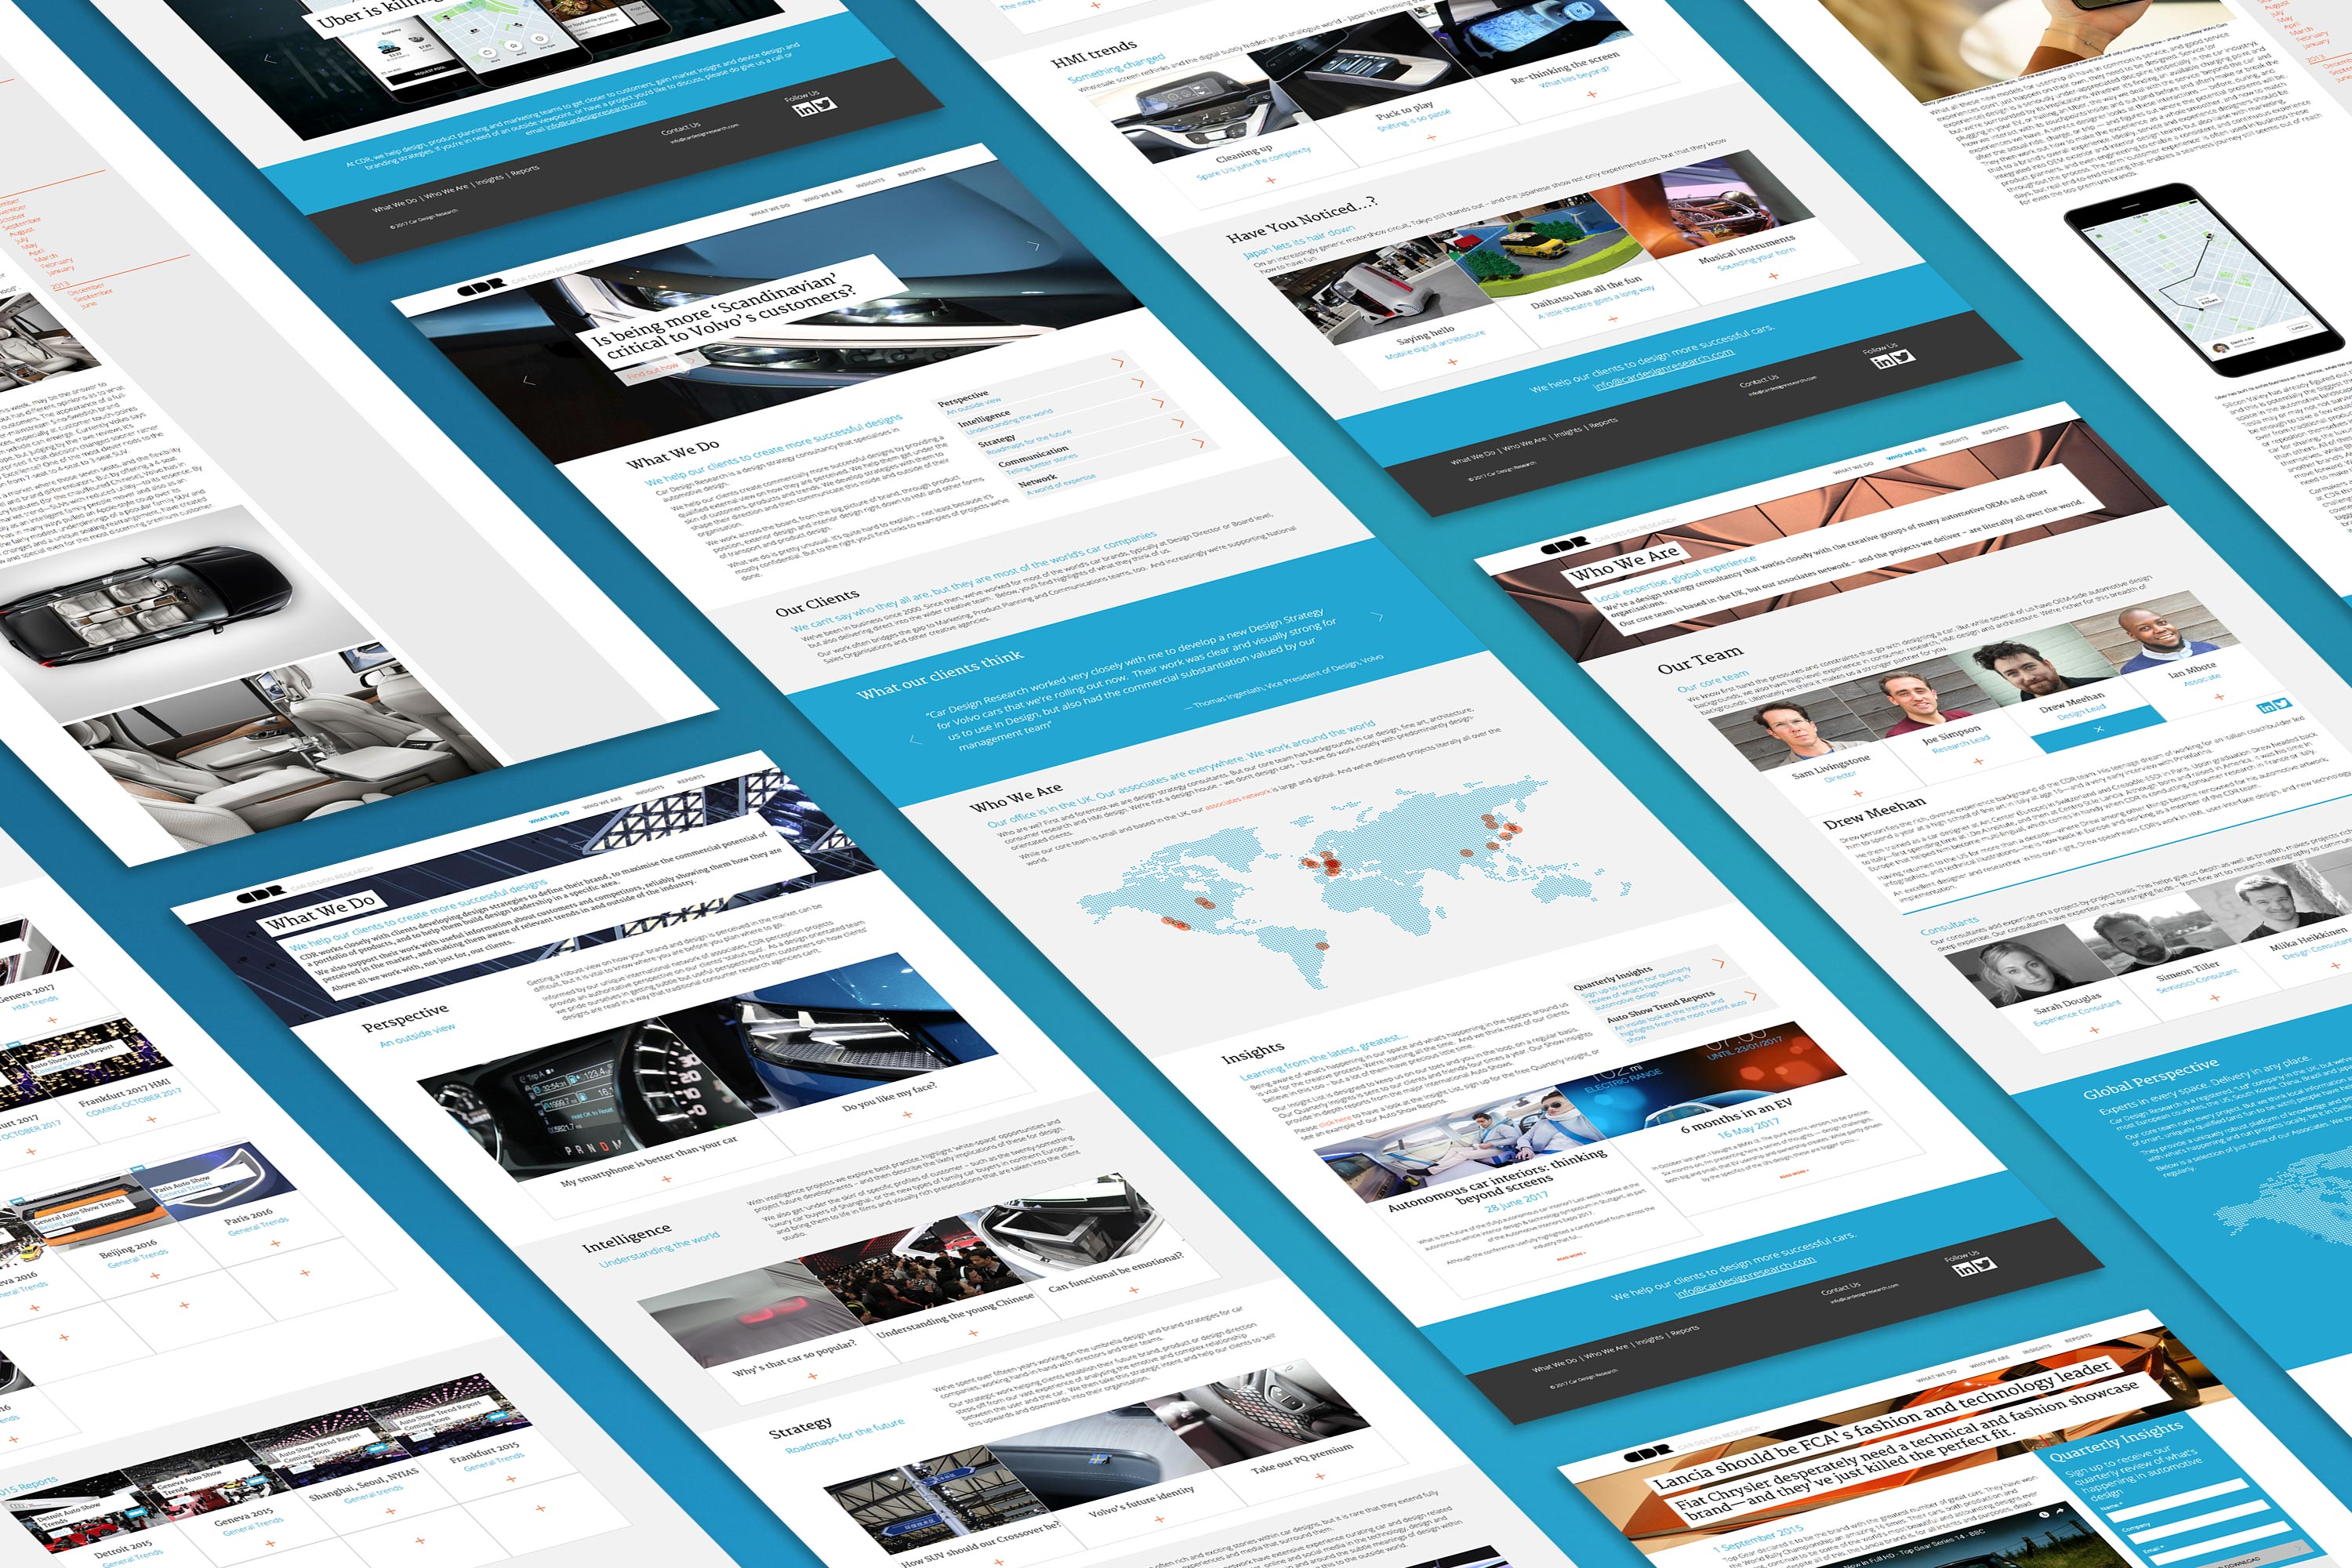 CDR Isometric website layout